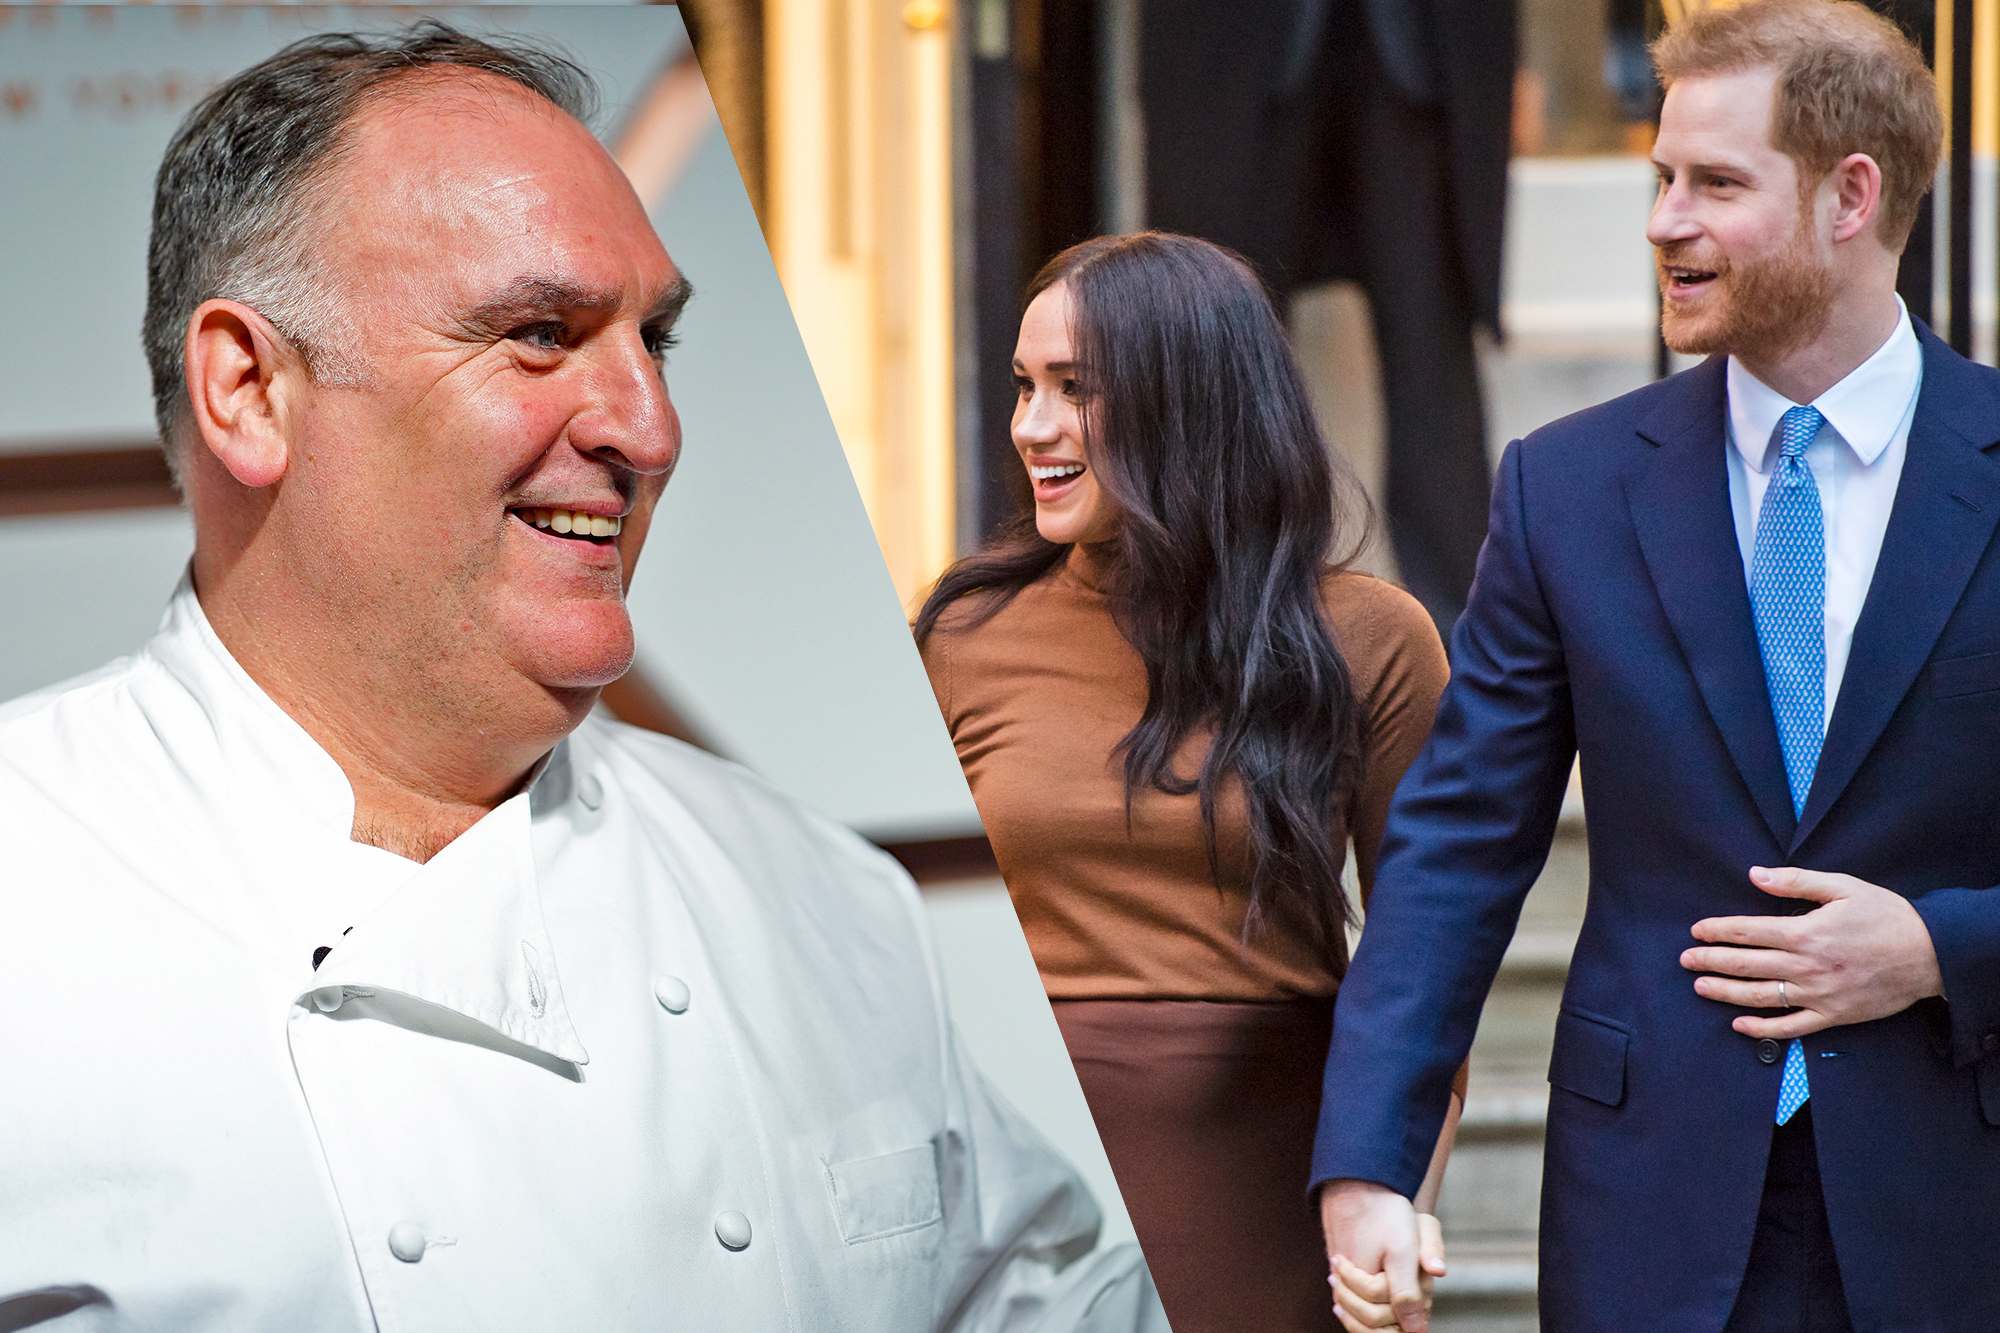 Jose Andres, Meghan Markle and Prince Harry